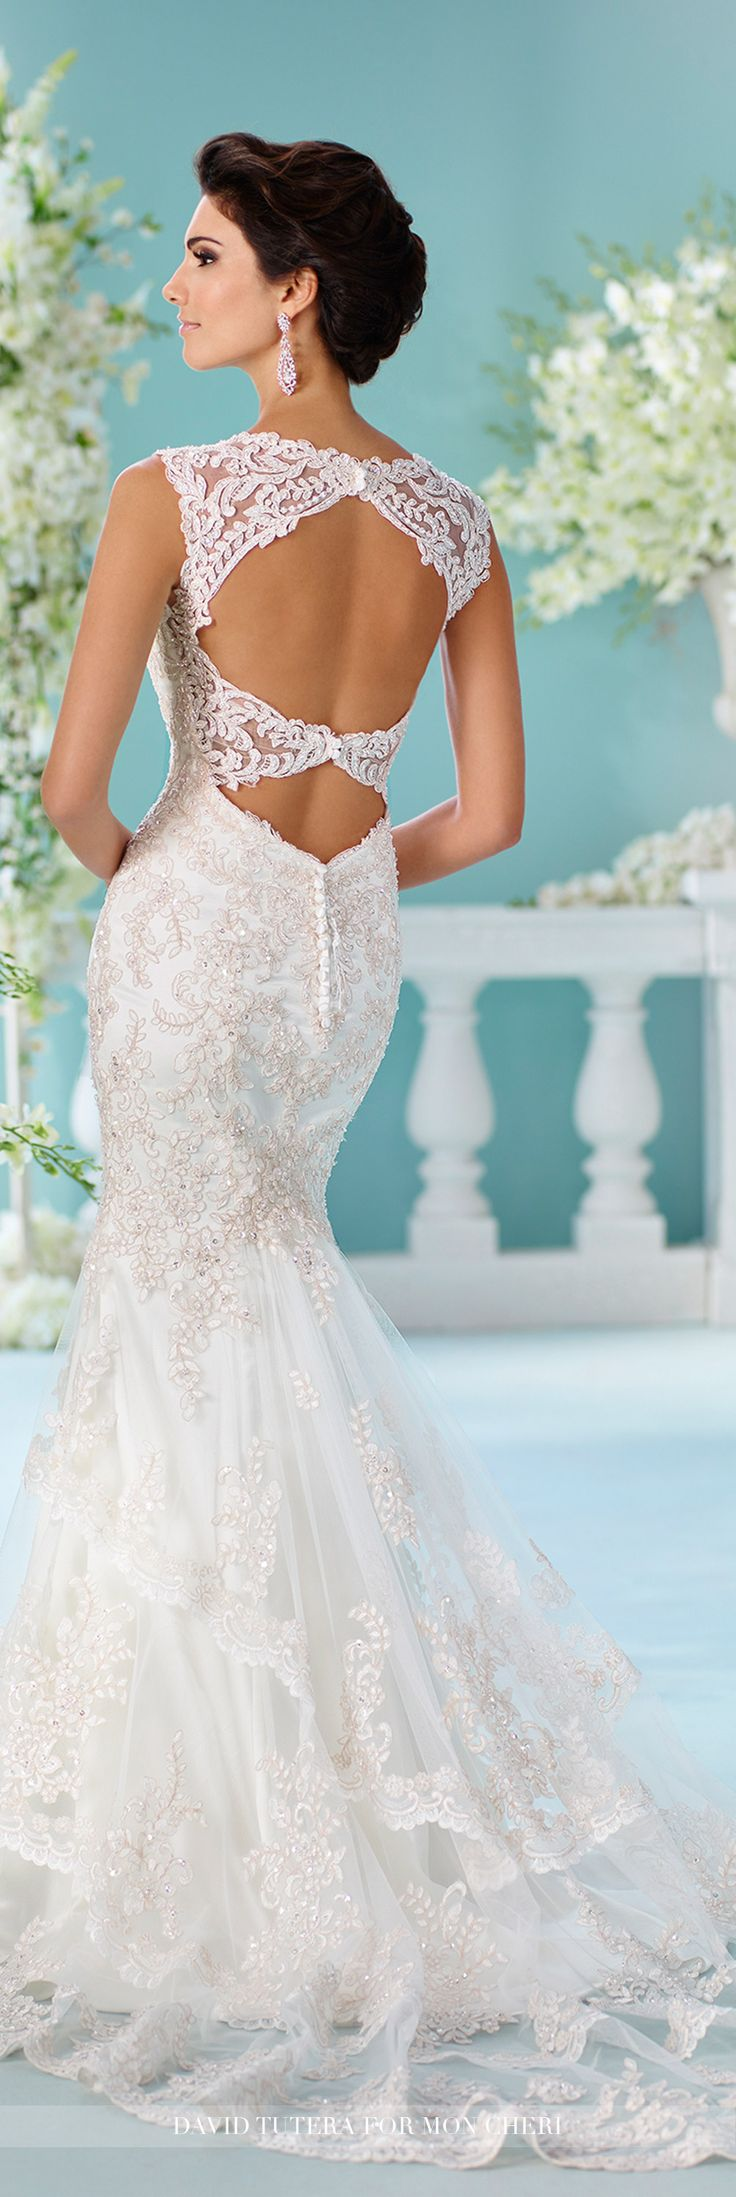 Best 25 Queen anne neckline ideas on Pinterest Halter wedding